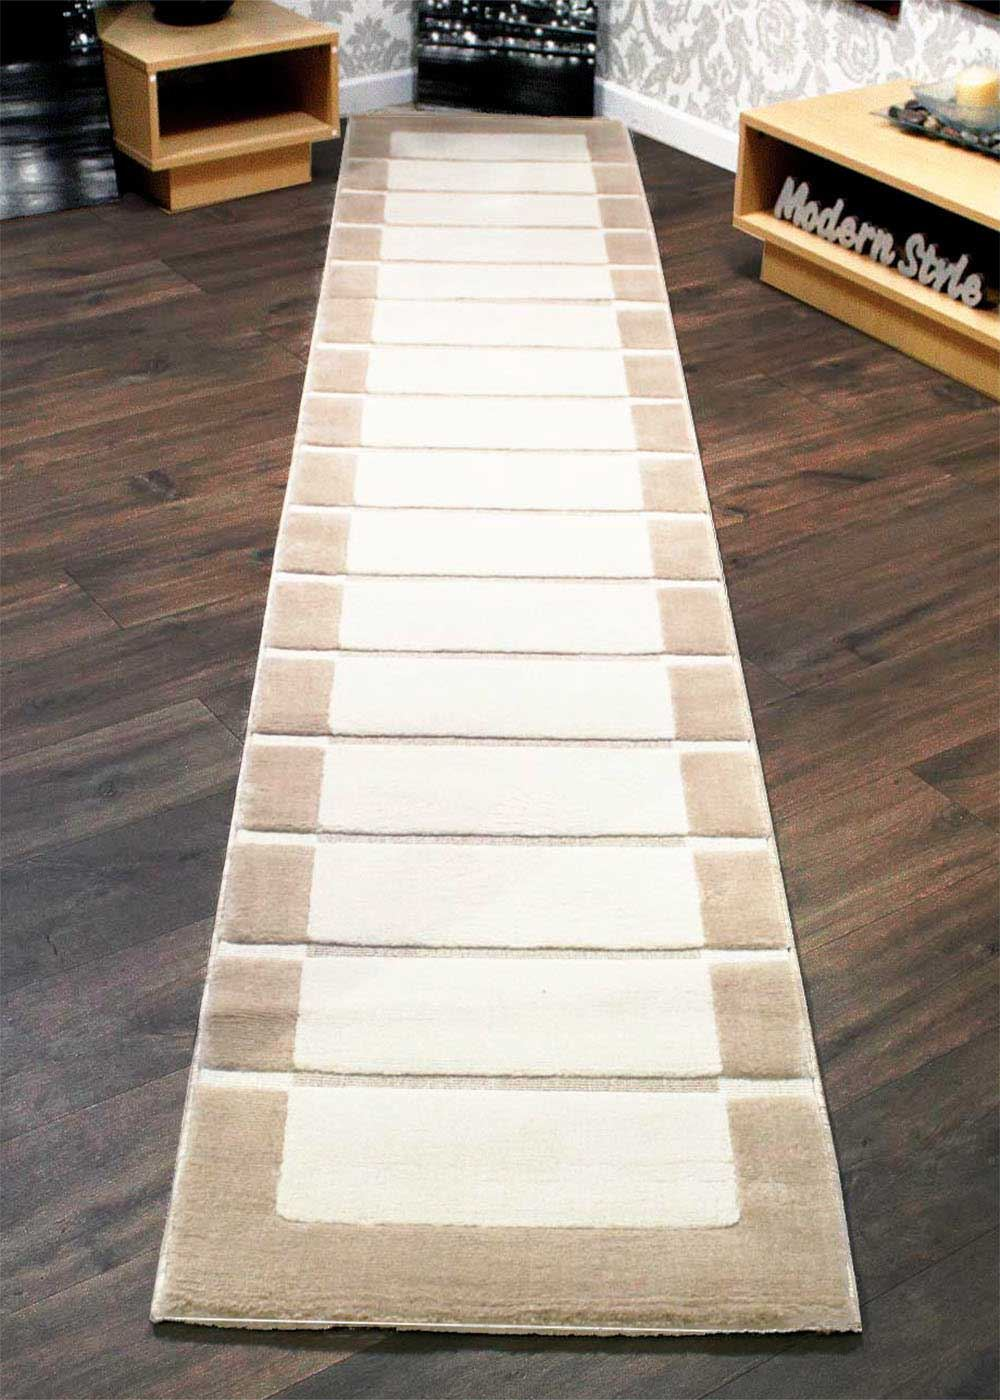 Rrp extra long thick hallway runner rugs chocolate brown beige cream ebay - Extra long carpet runners ...